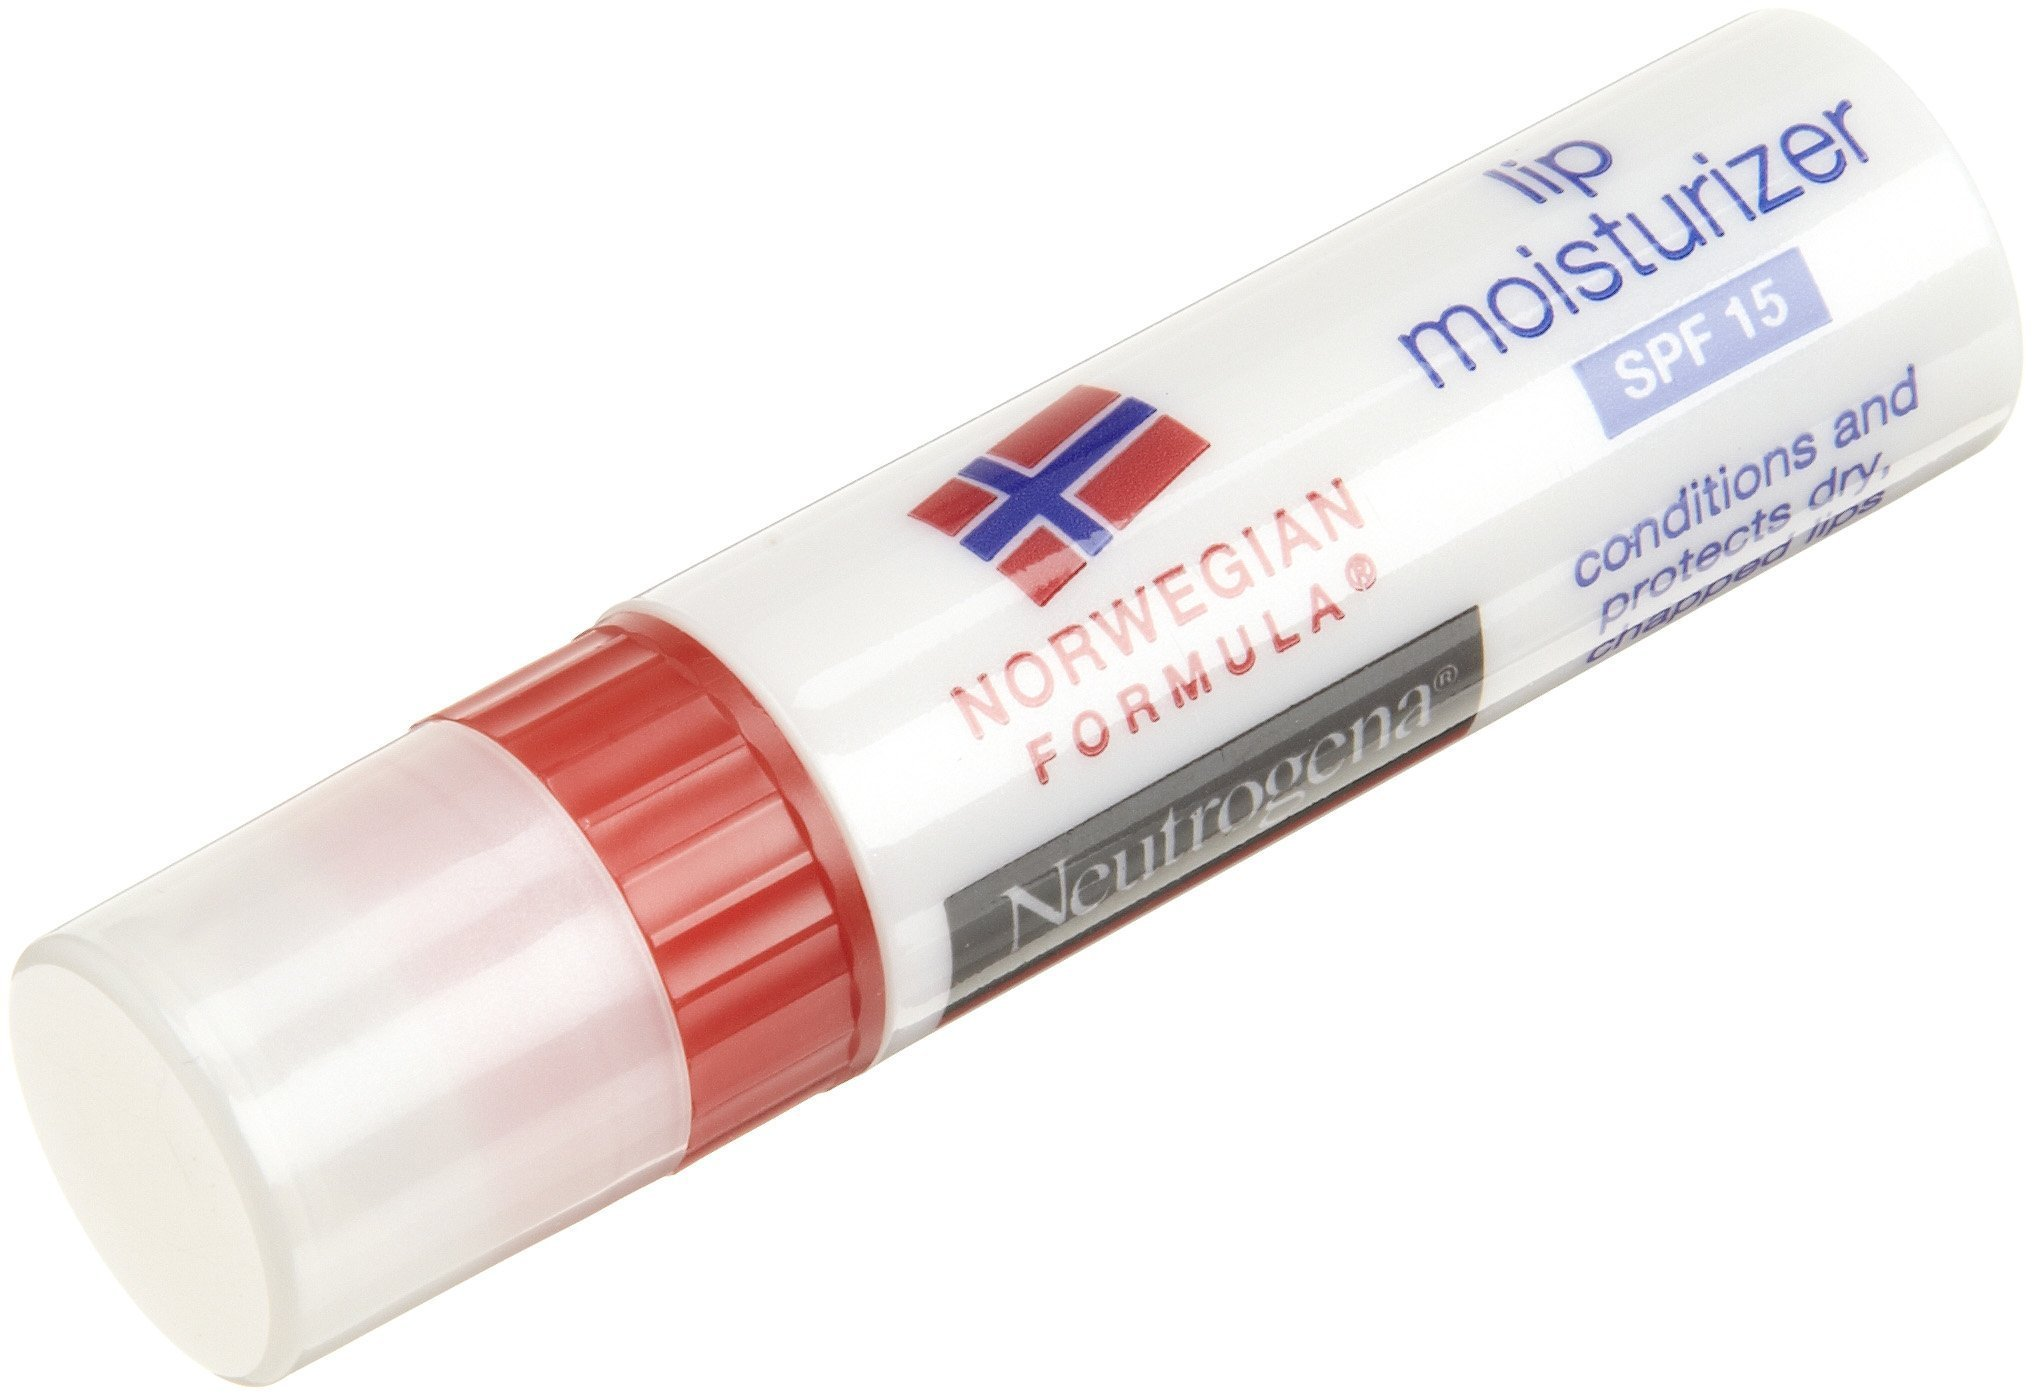 Neutrogena Norwegian Formula Lip Moisturizer, SPF 15, 0.15 Ounce (Pack of 8)